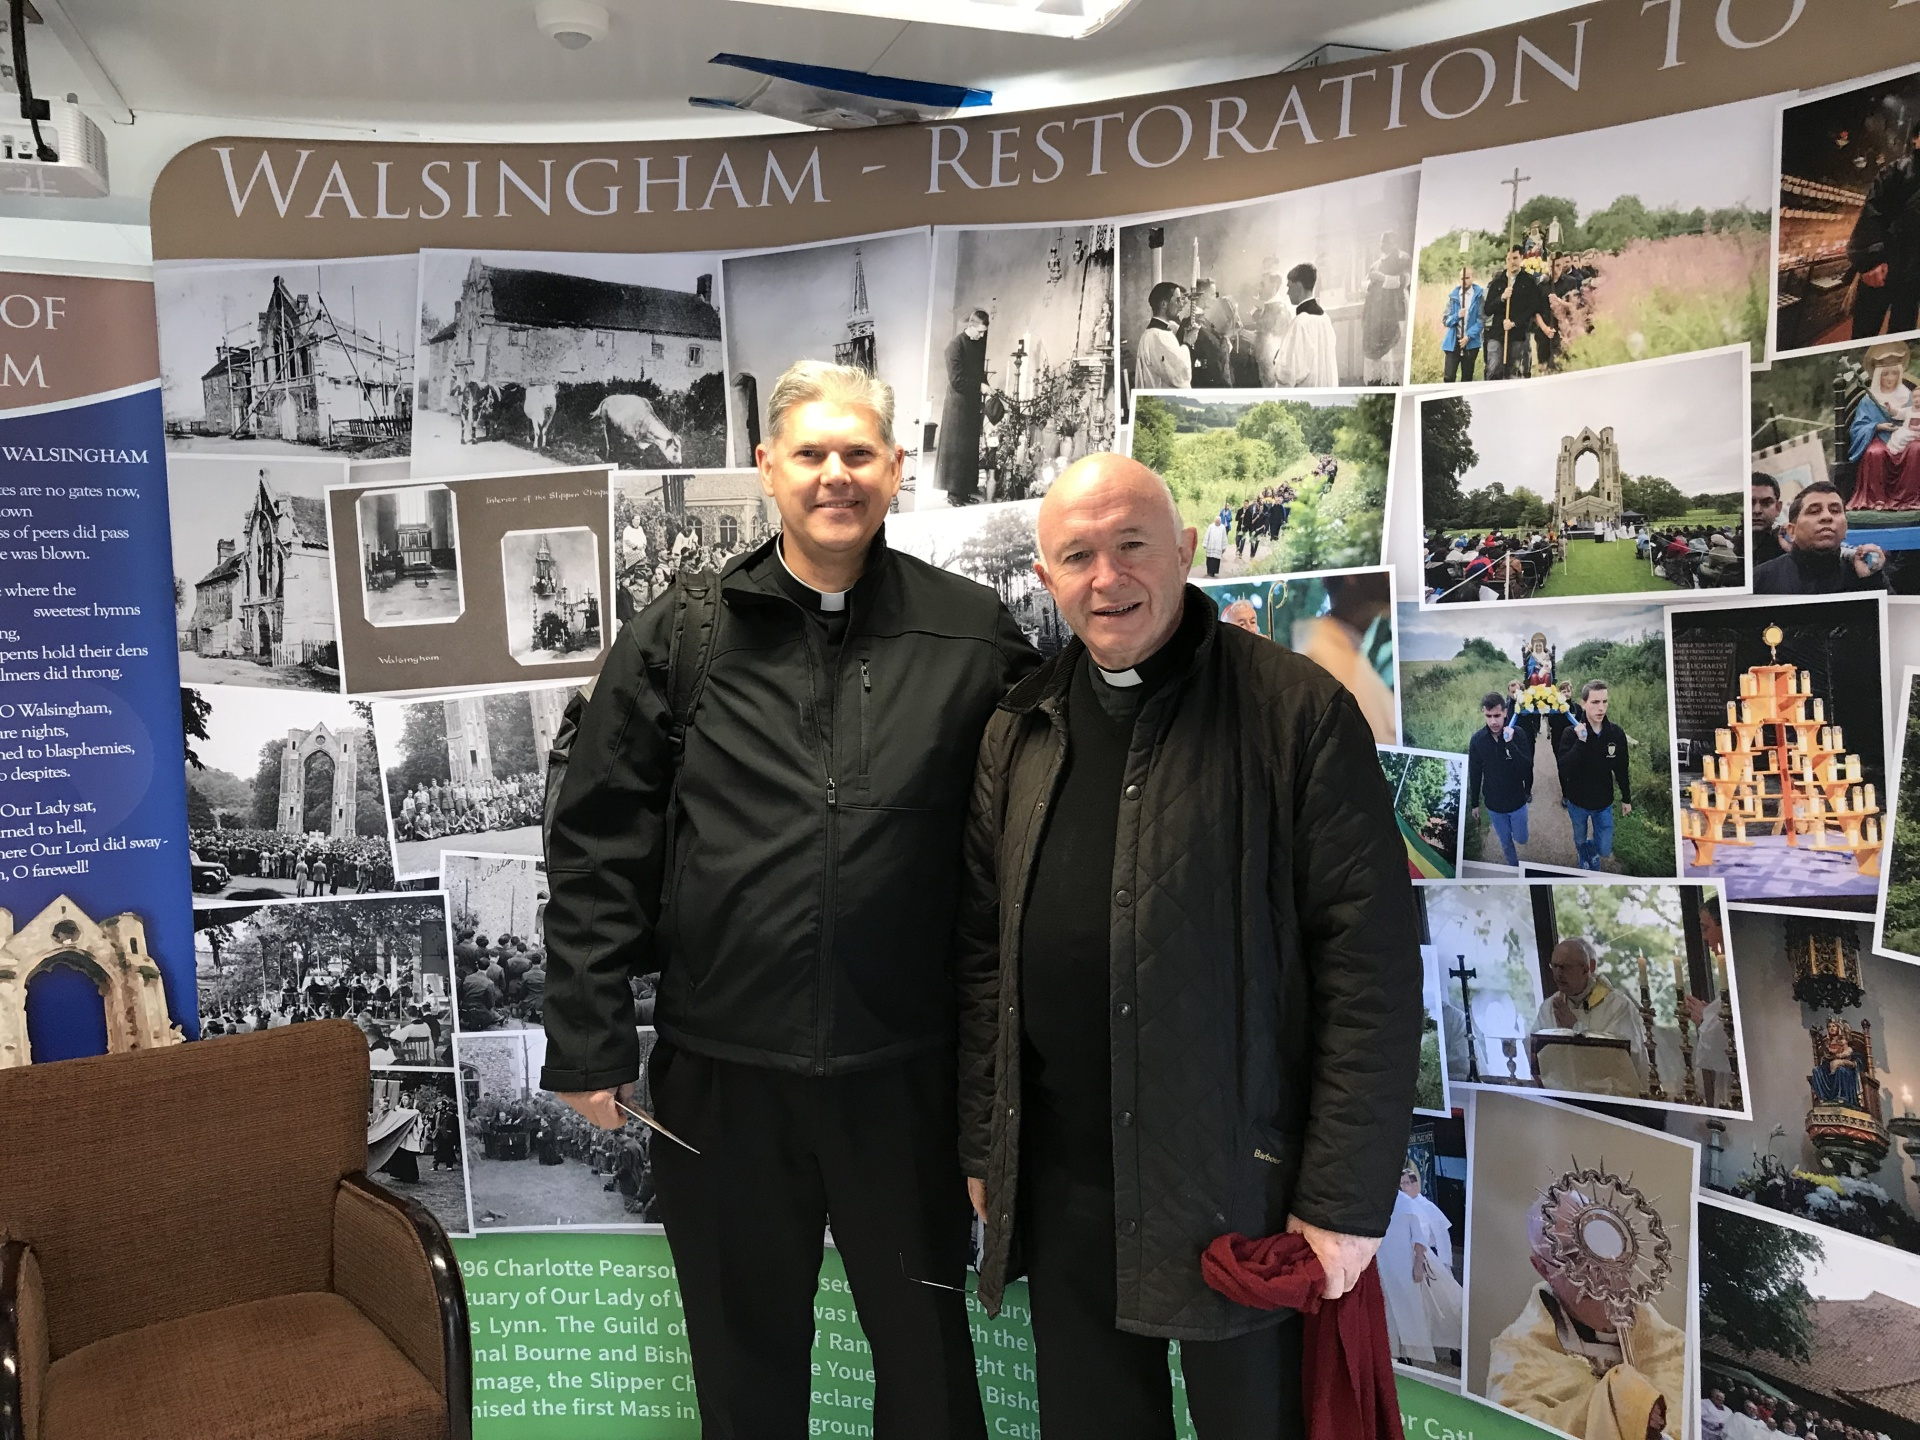 Monsignor Keeney (left) and Monsignor Armitage, rector of Walsingham Shrine in Norfolk, East Anglia (right)